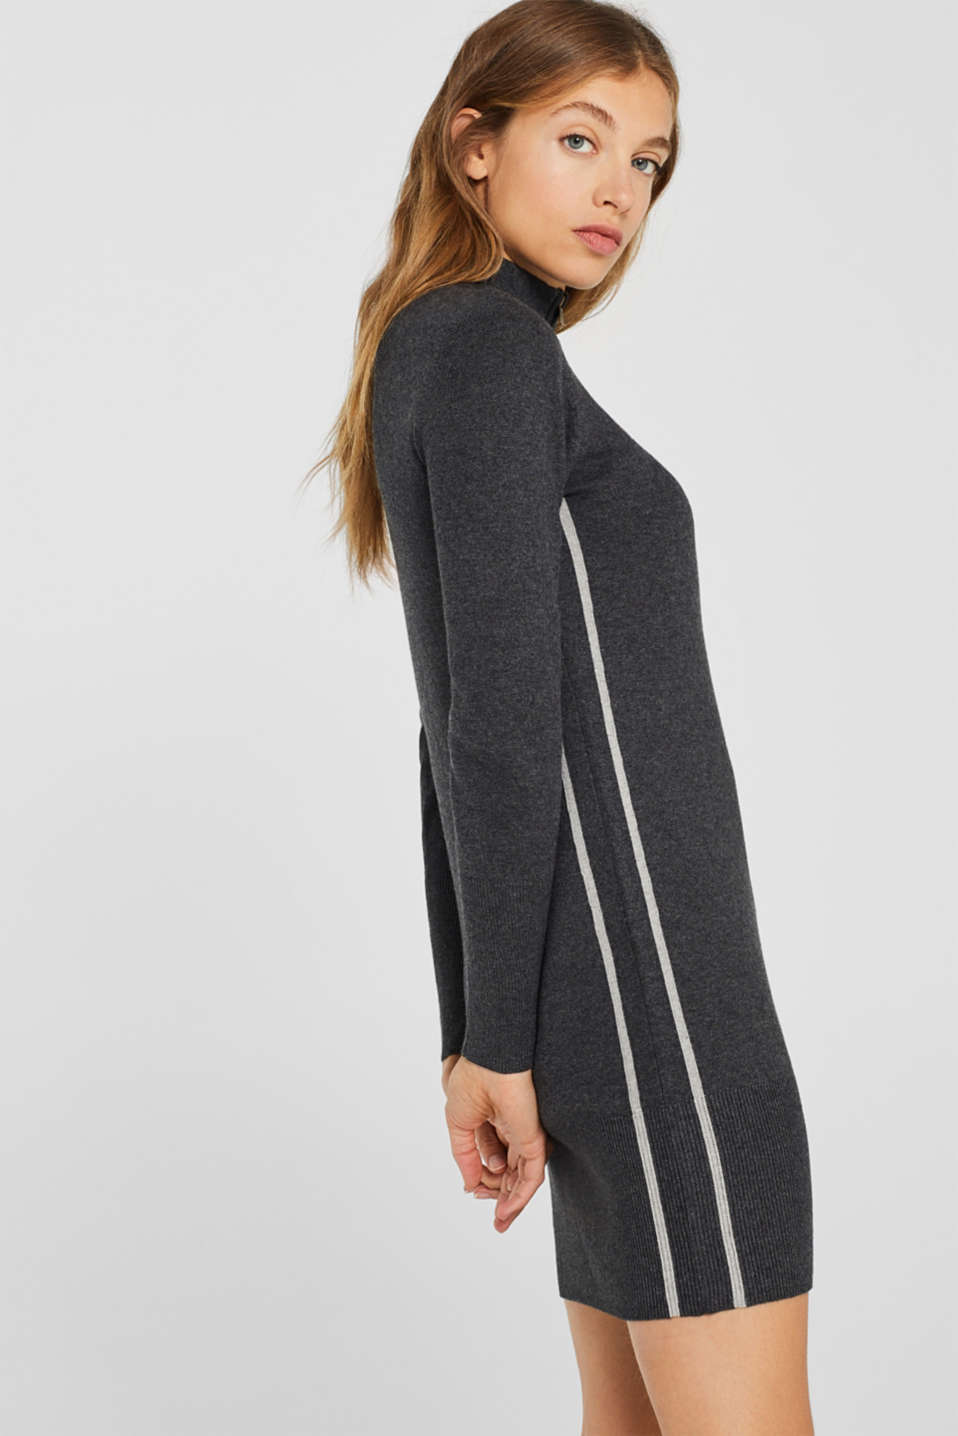 Knit dress with a zip-up band collar, GUNMETAL 5, detail image number 4